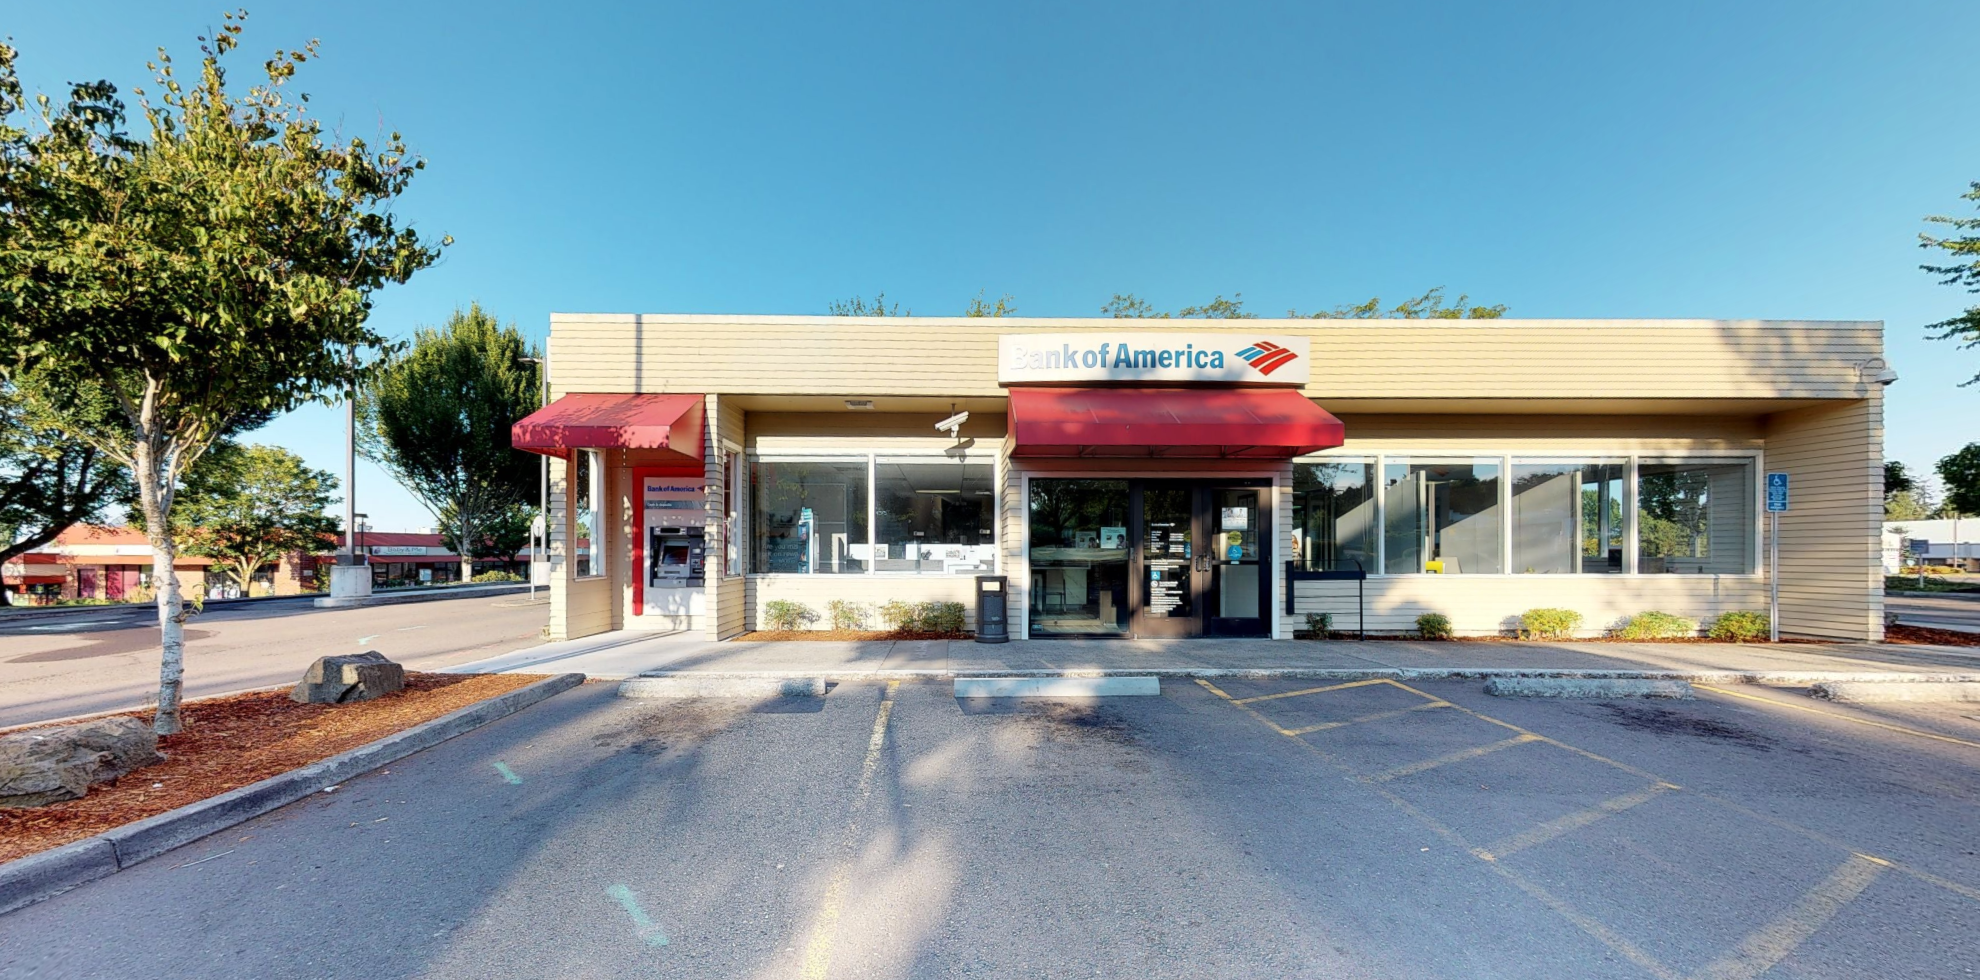 Bank of America financial center with walk-up ATM   12600 NW Cornell Rd, Portland, OR 97229